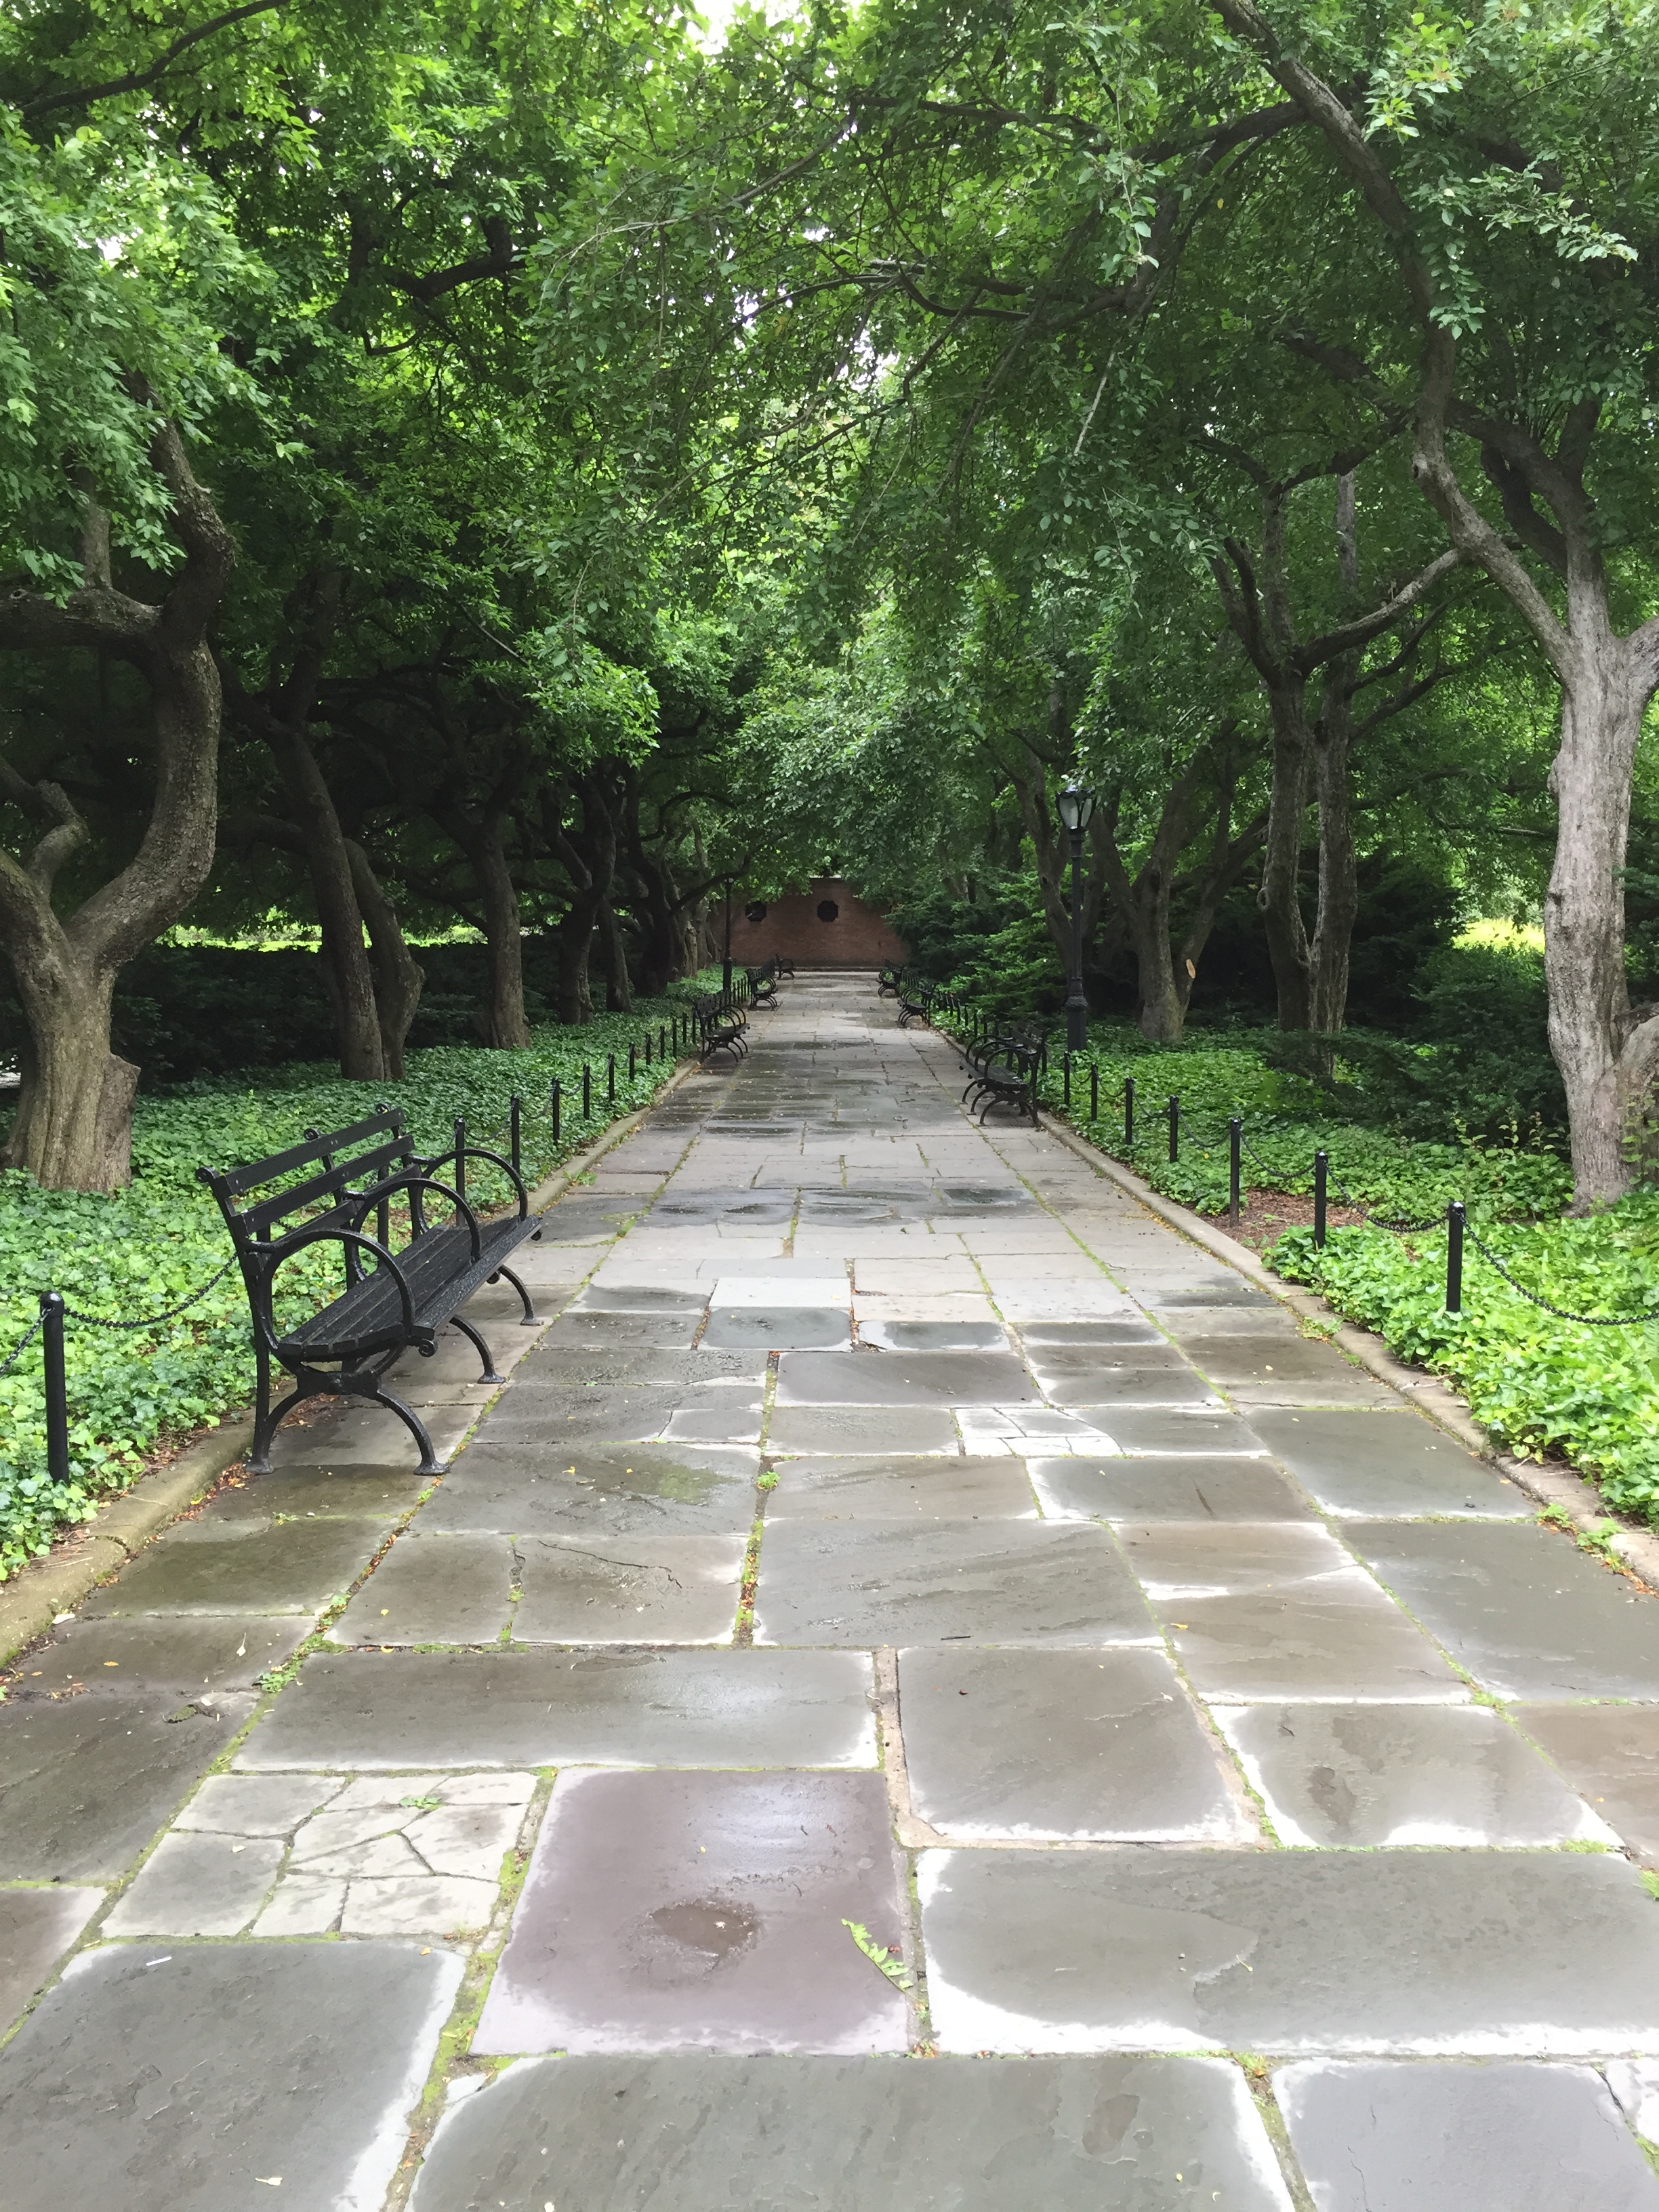 Pathway in the Conservatory Garden